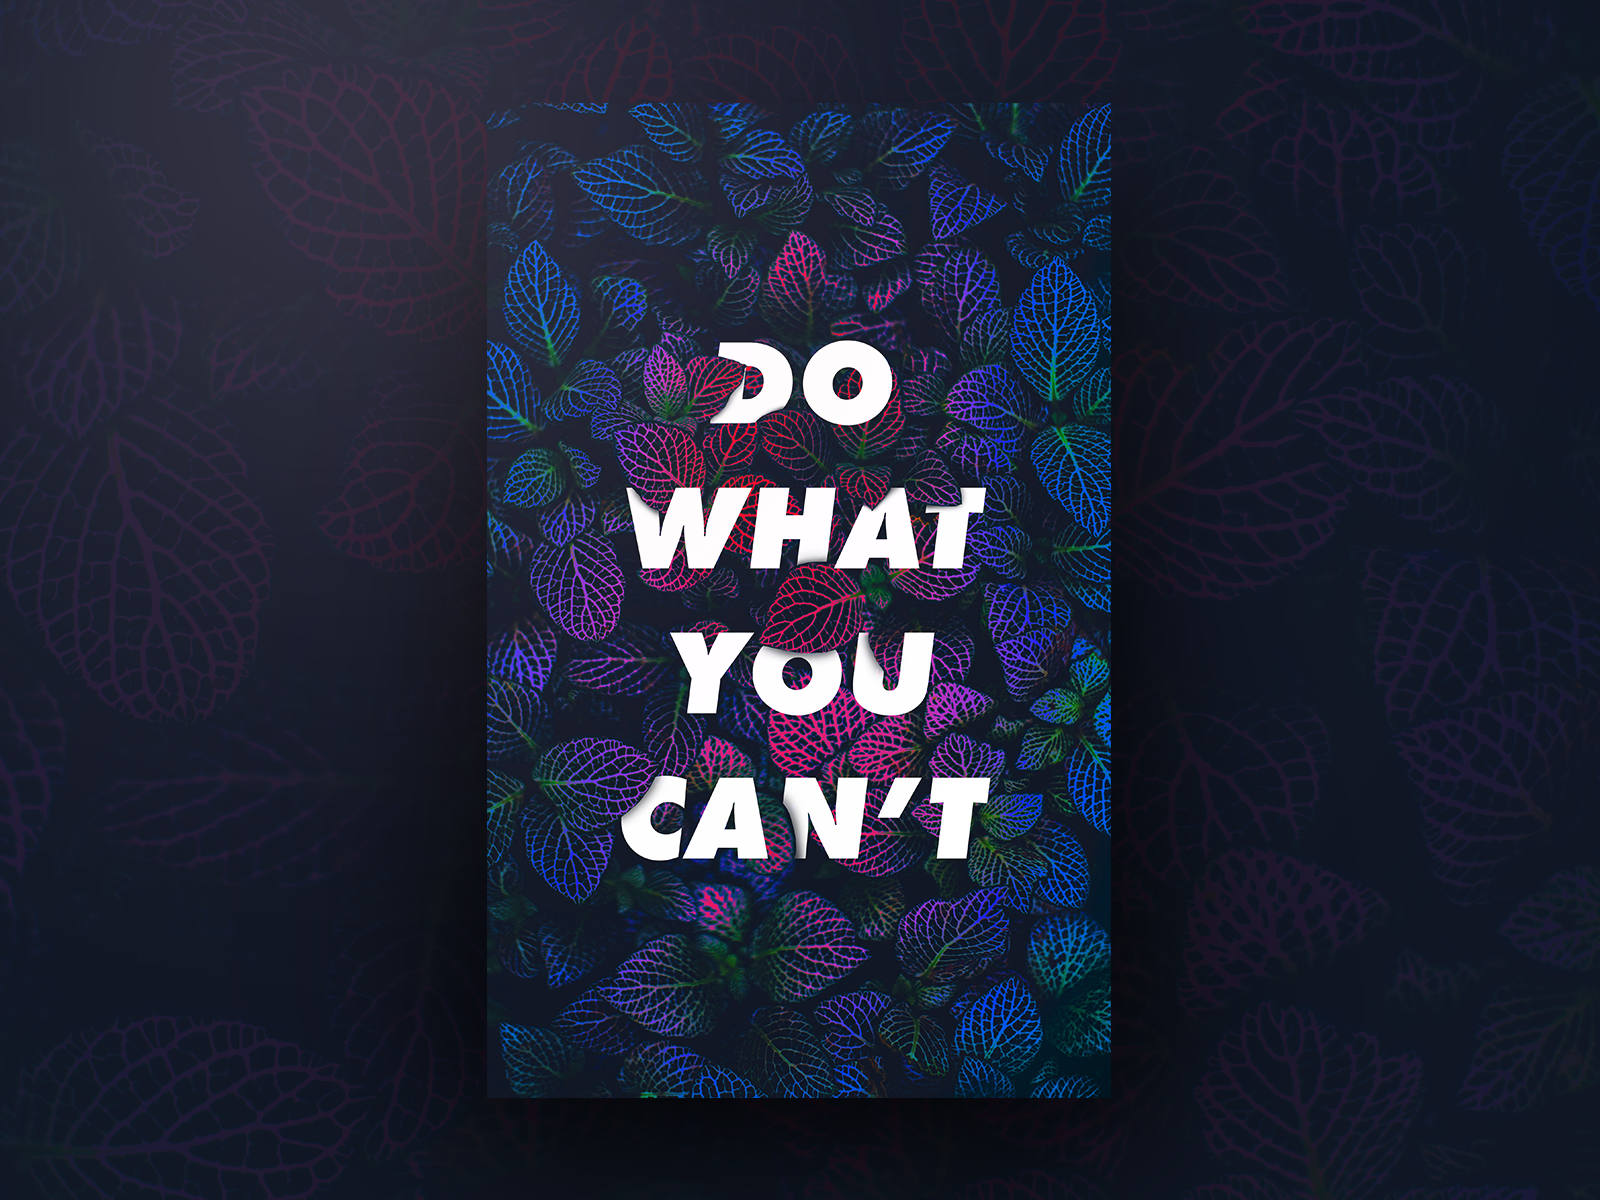 Do what you cant drbl